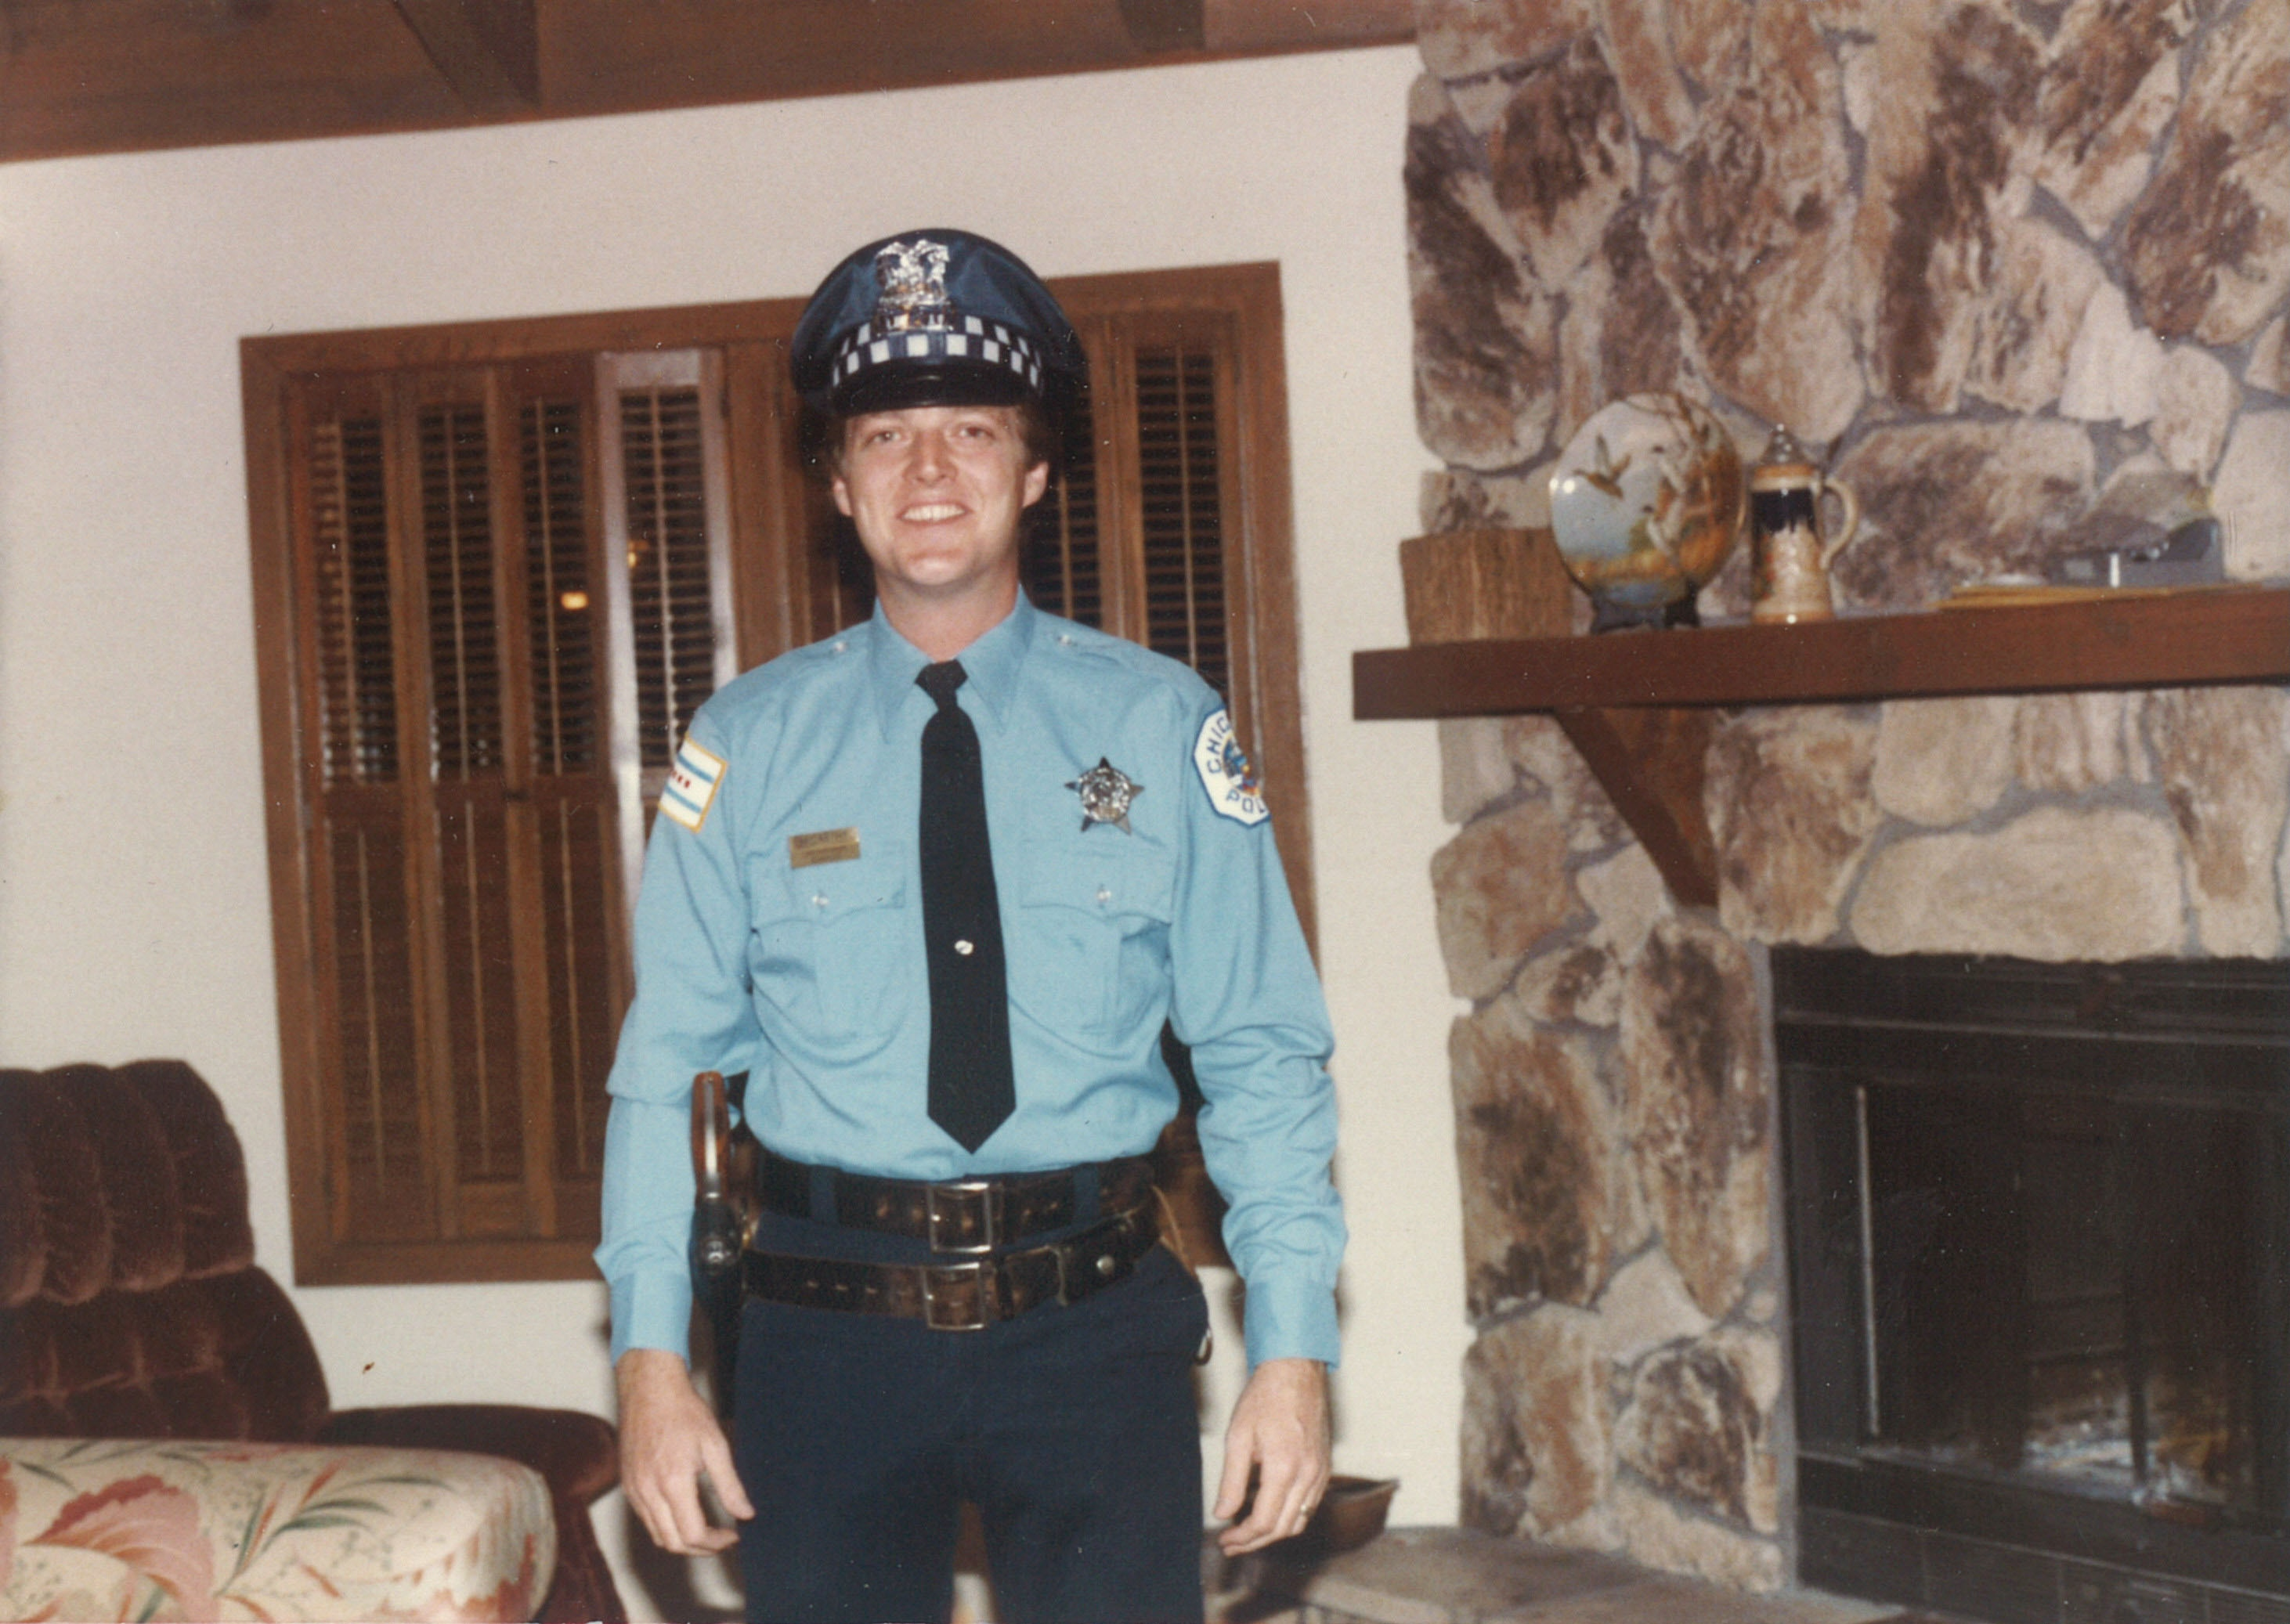 Me in uniform in my early years as a Chicago Cop.